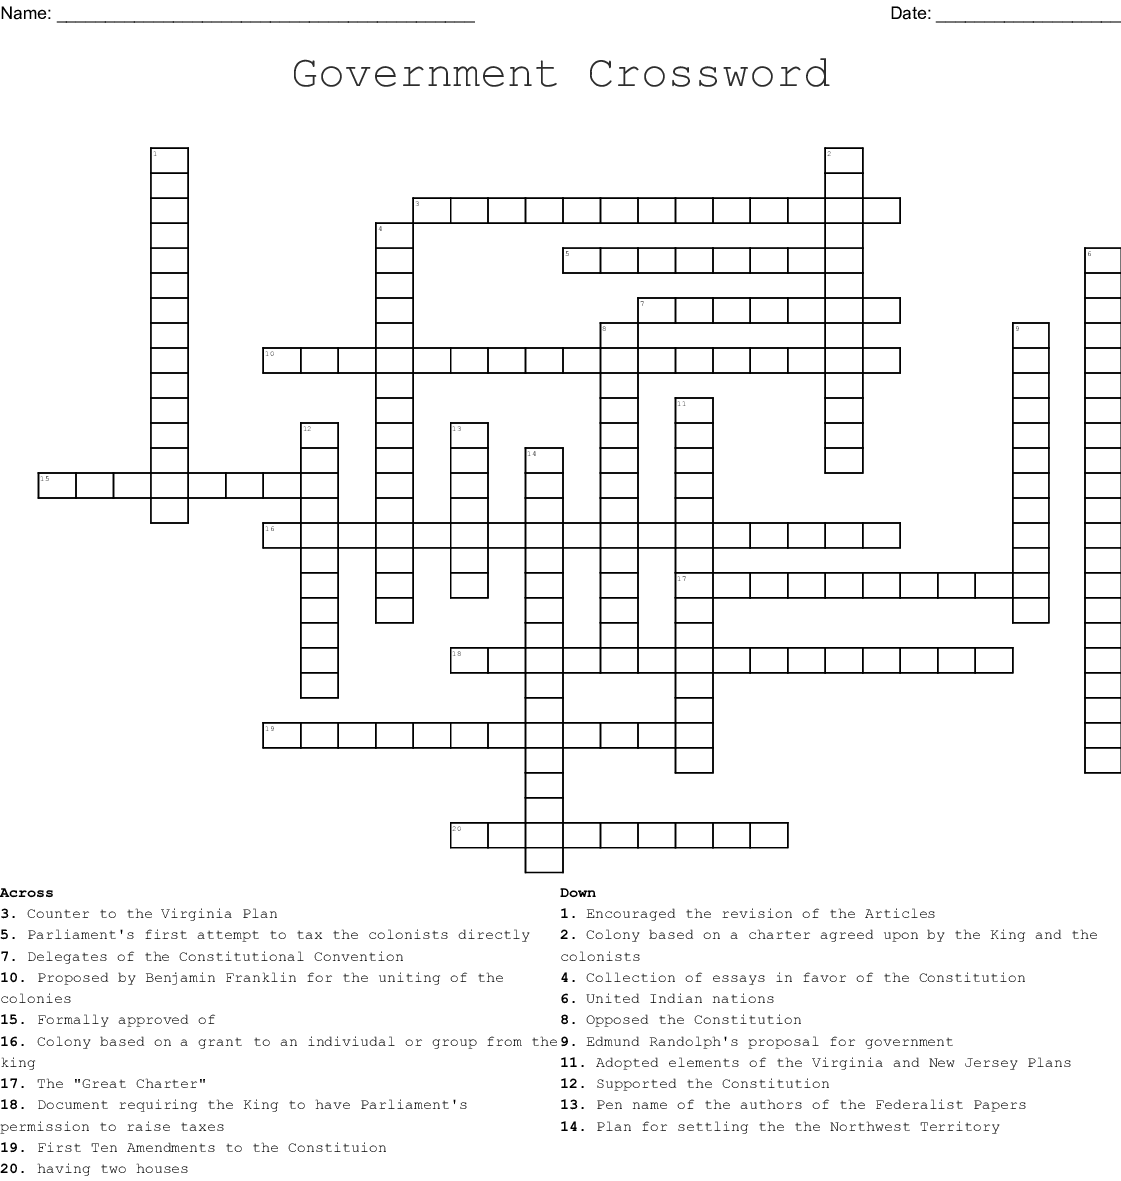 Origins Of American Government Crossword